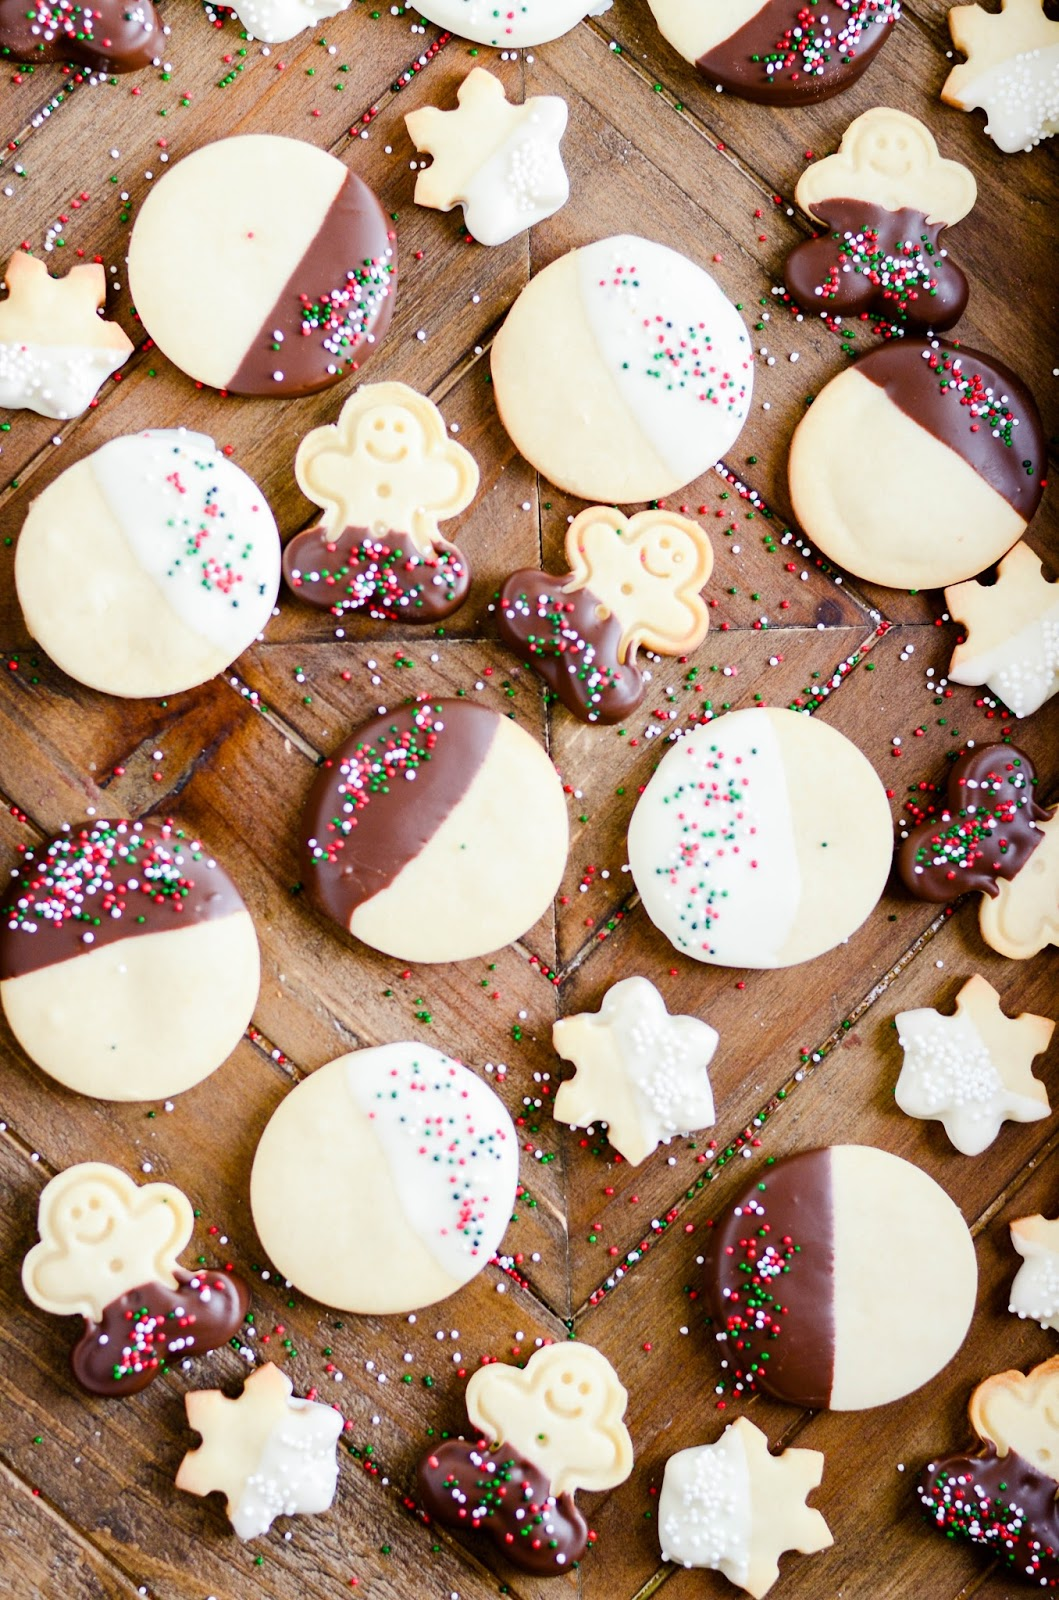 With just three, simple ingredients you can make a delicious, traditional shortbread. Dip it in chocolate and add sprinkles to make it extra festive!